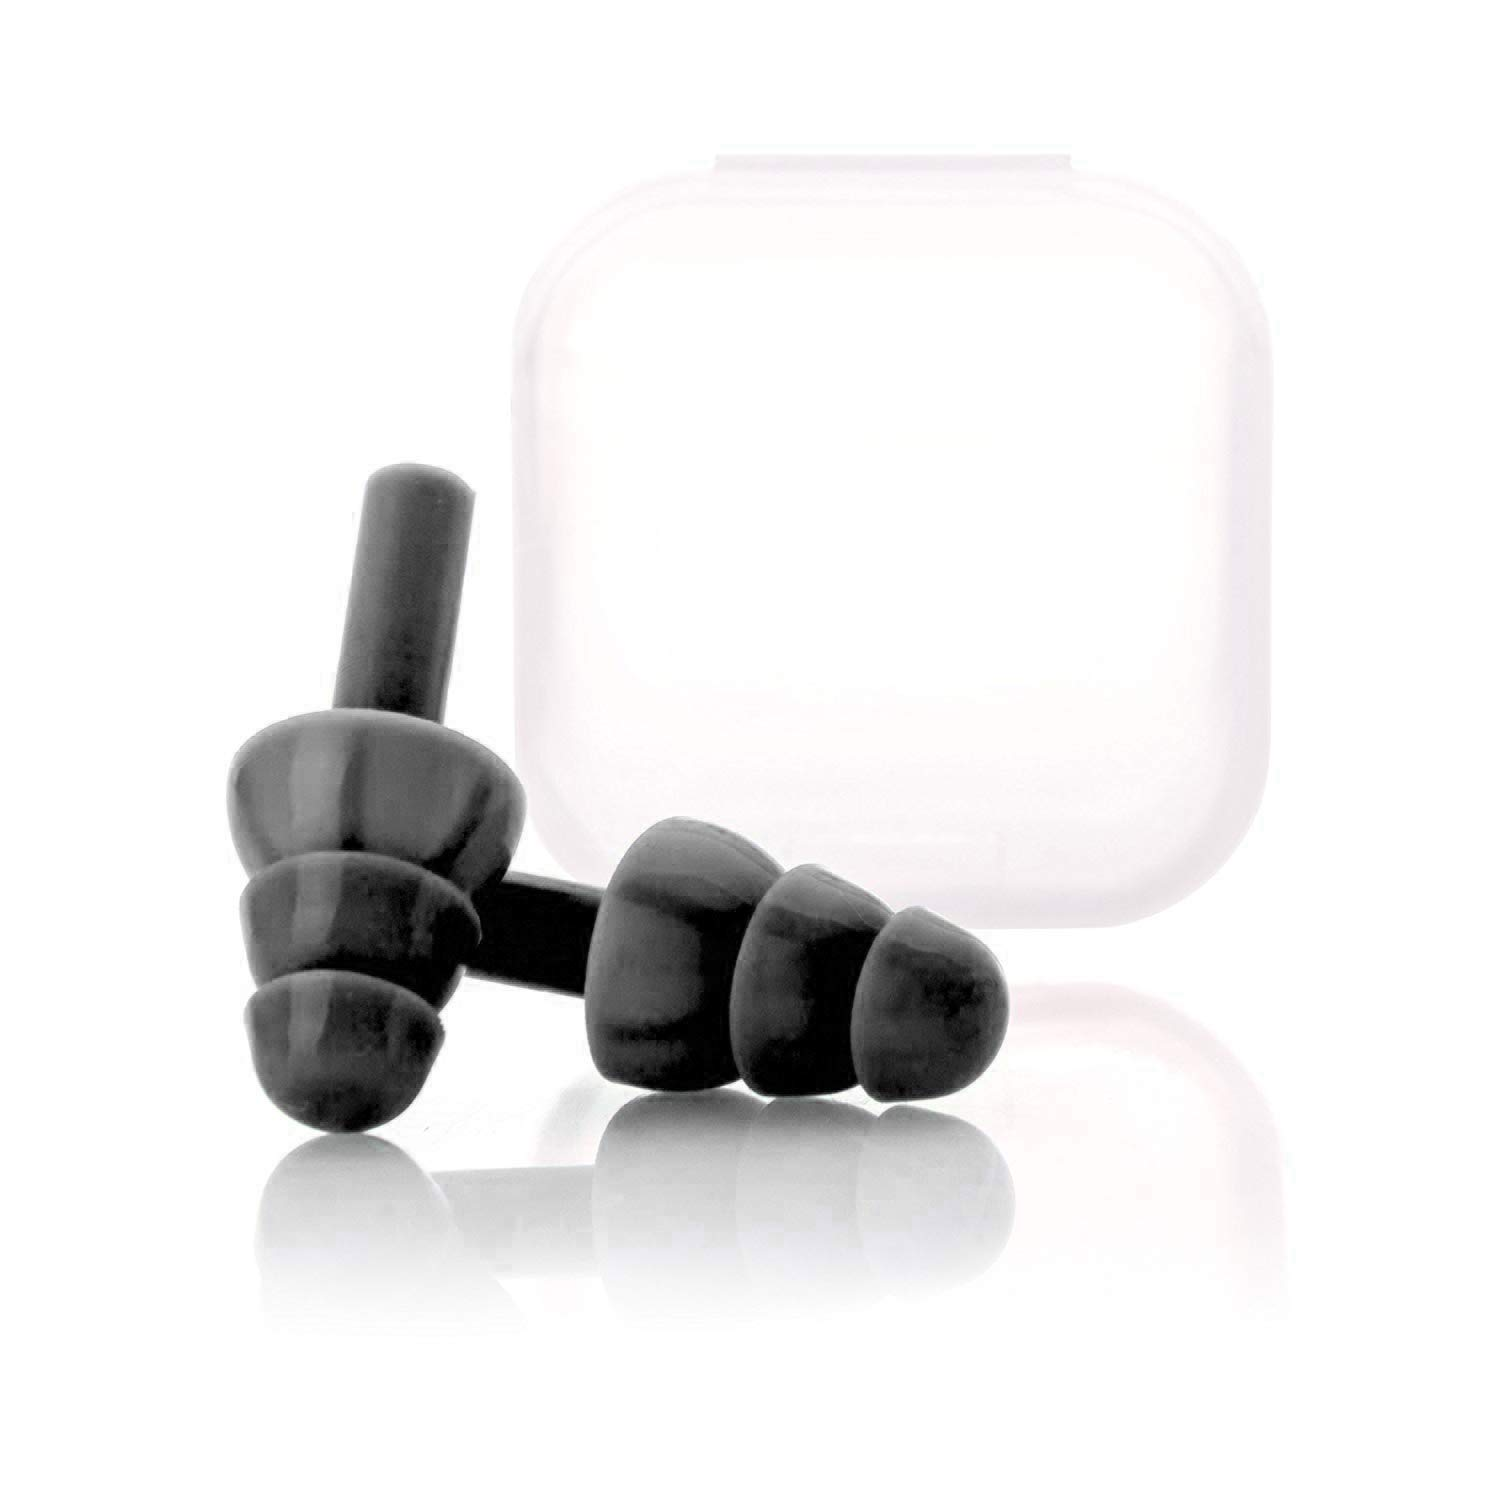 Noise Cancelling Sound Blocking Eerplus Noise Reduction for Musicians Concerts Silicone Sleeping Earplugs